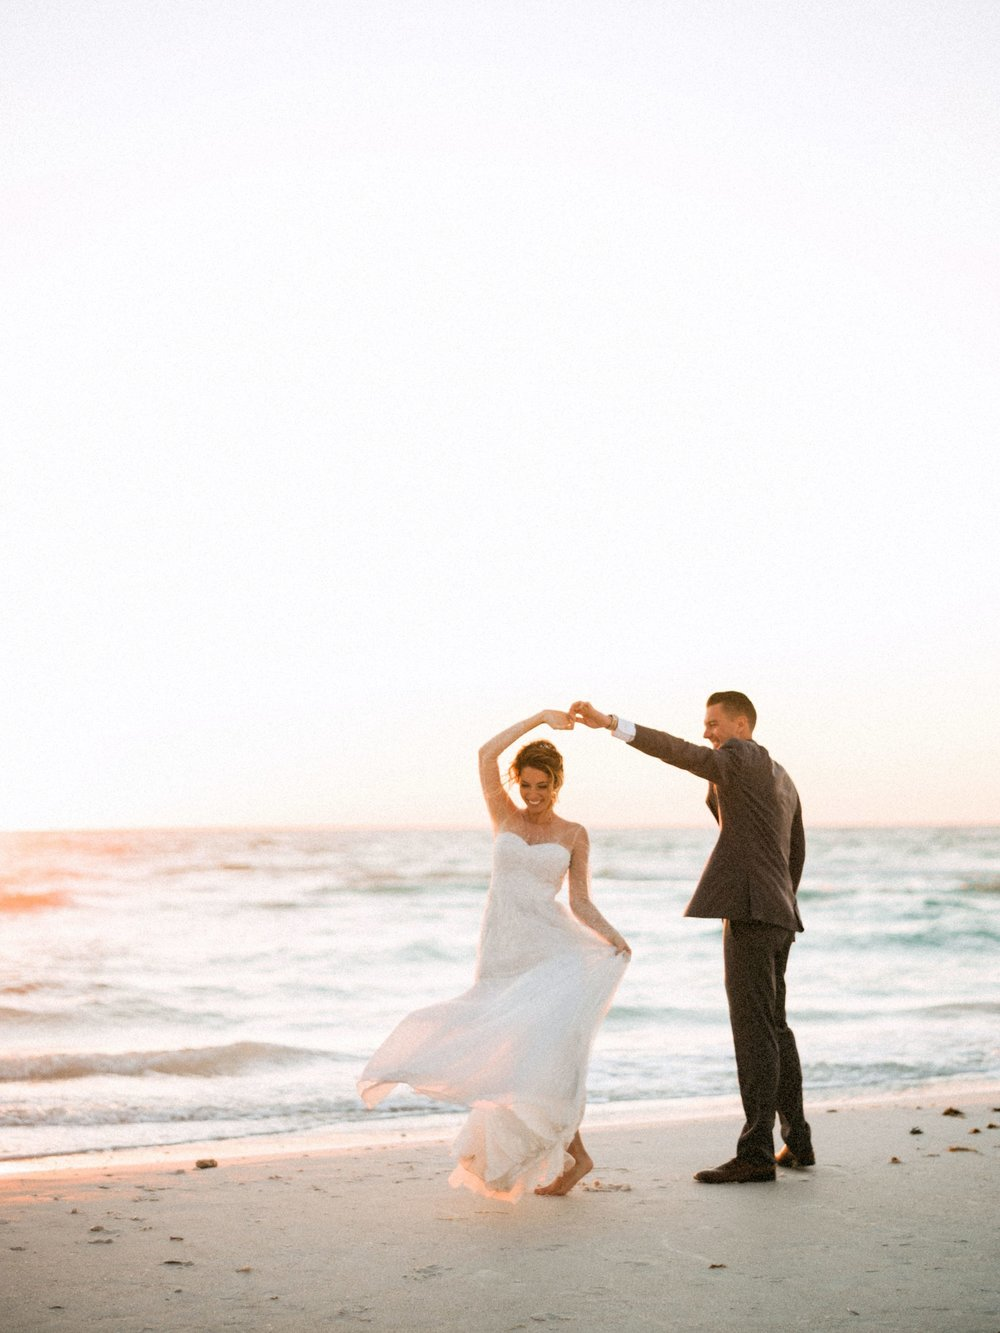 Sarasota-Wedding-Planner-Beach-Bride-Groom-Destination-Inspiration.jpeg